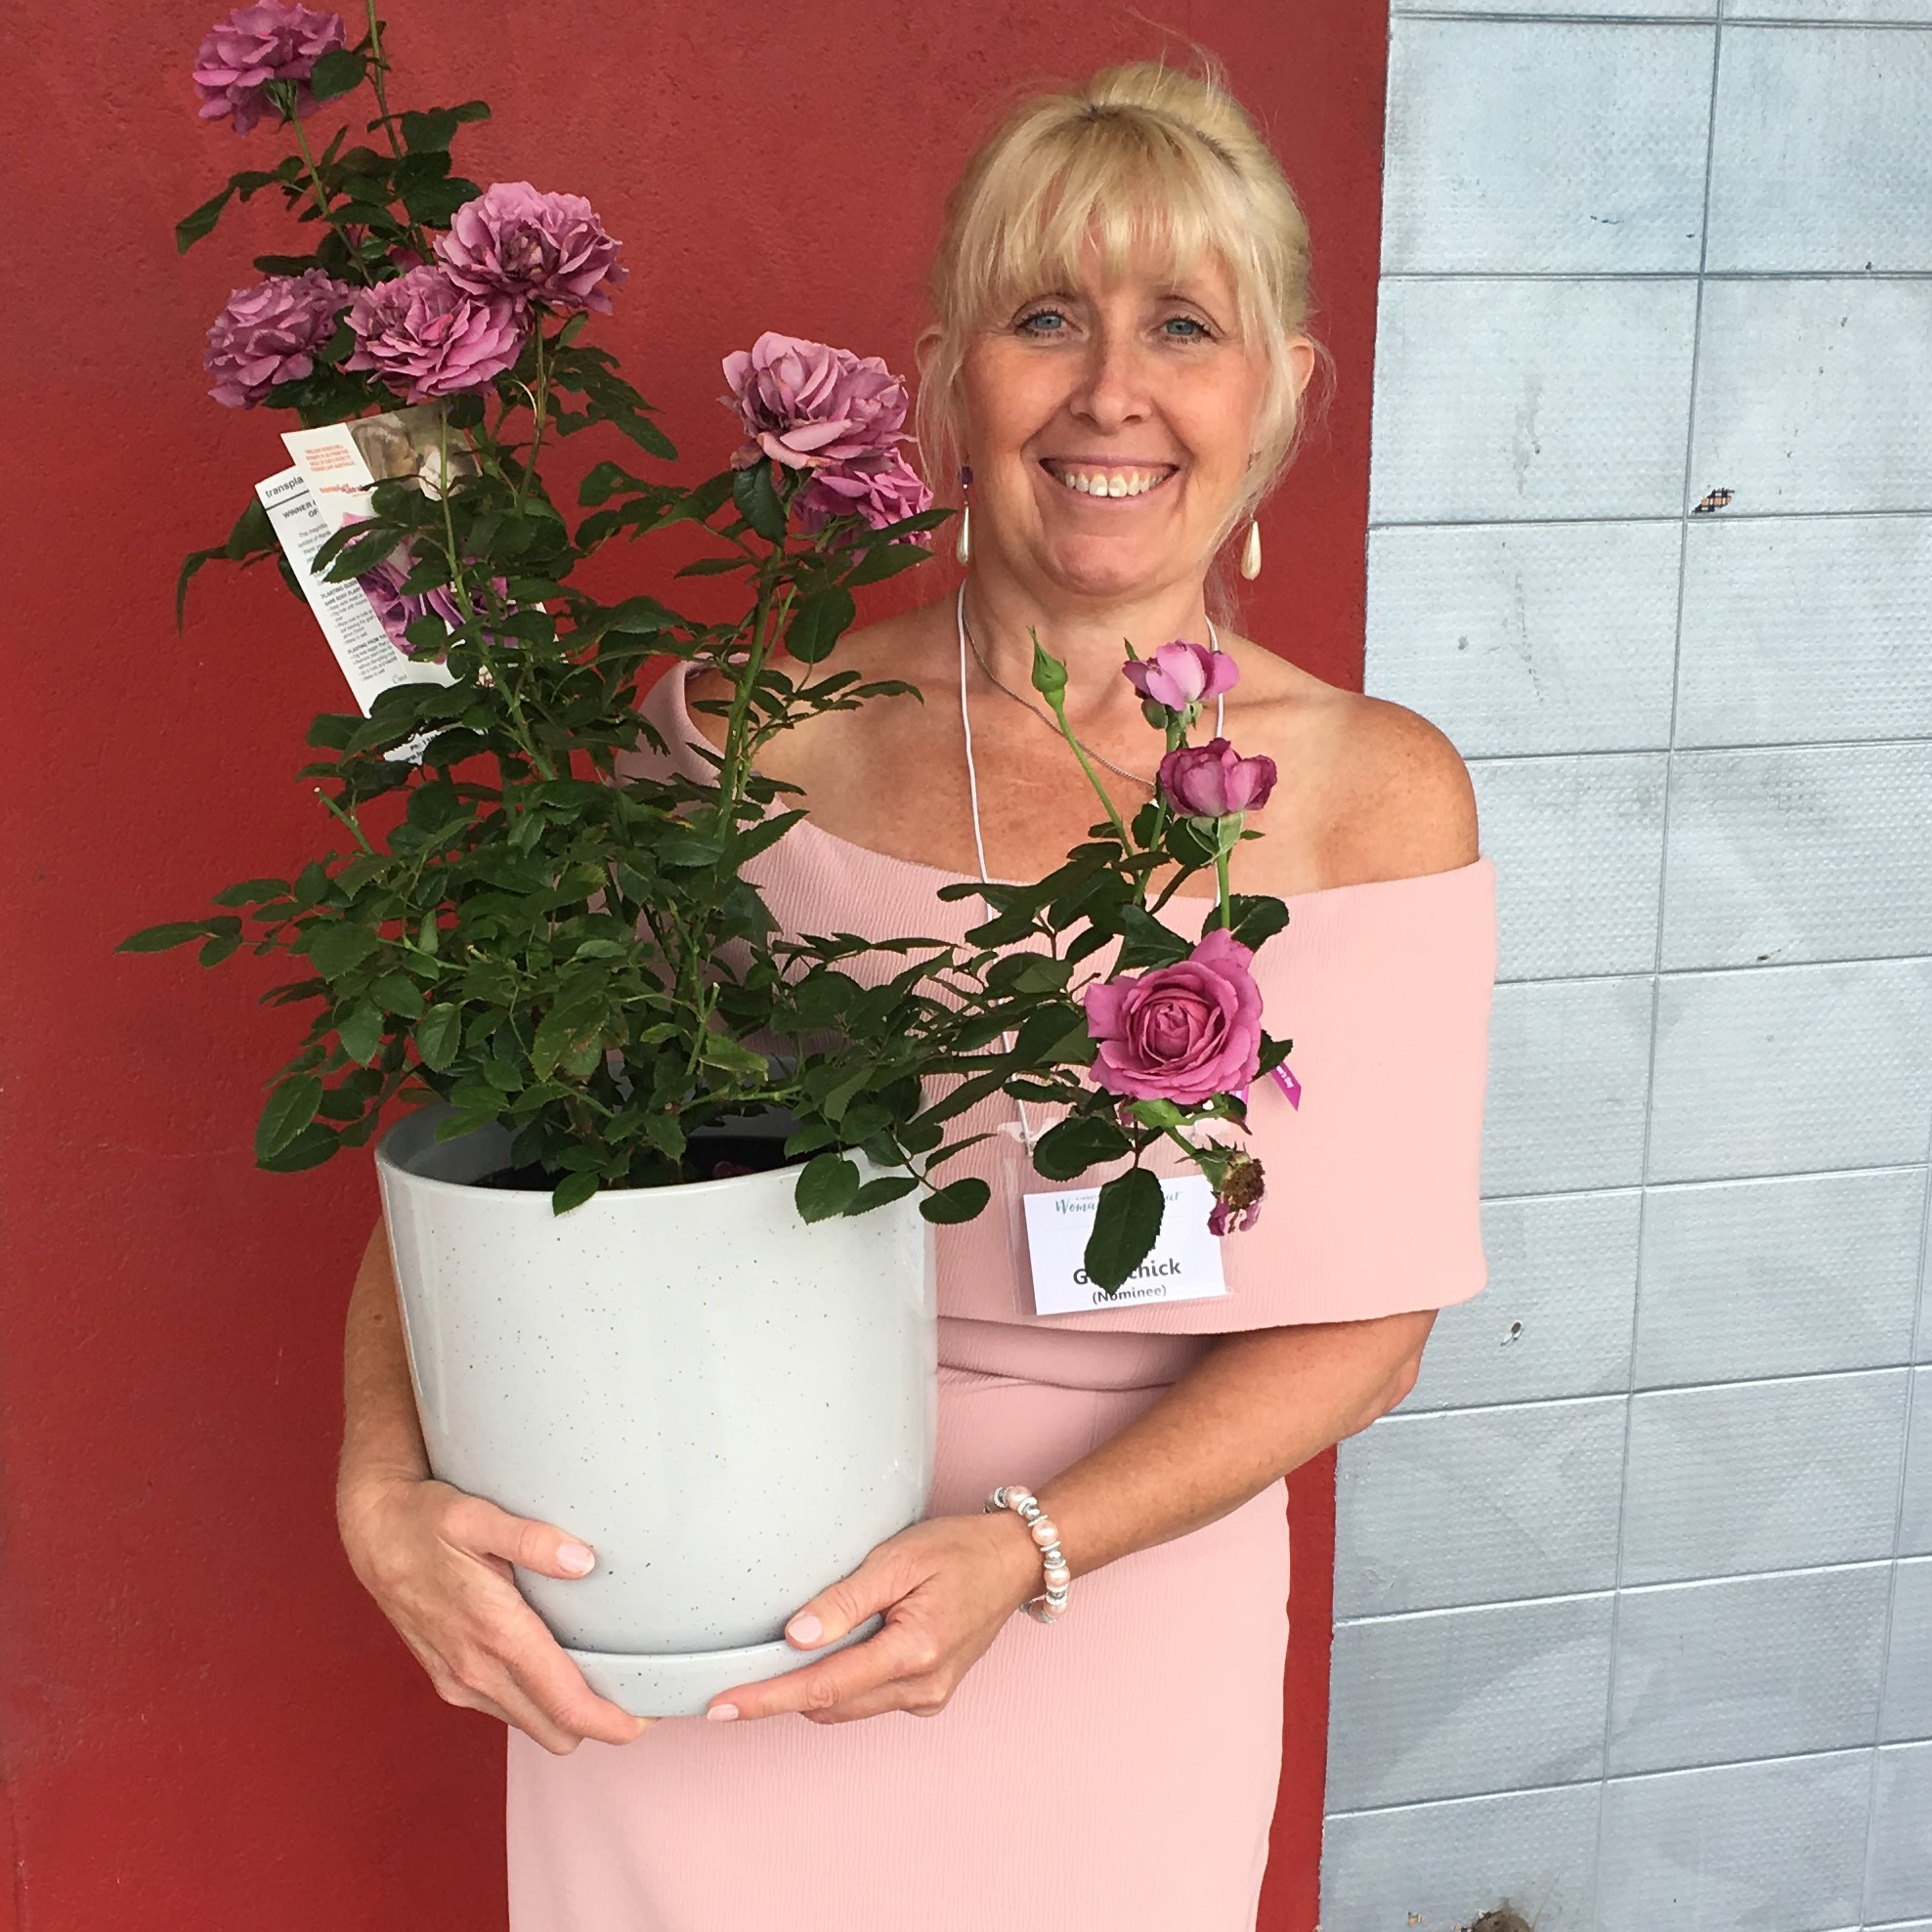 A well dressed woman is holding a potted rose